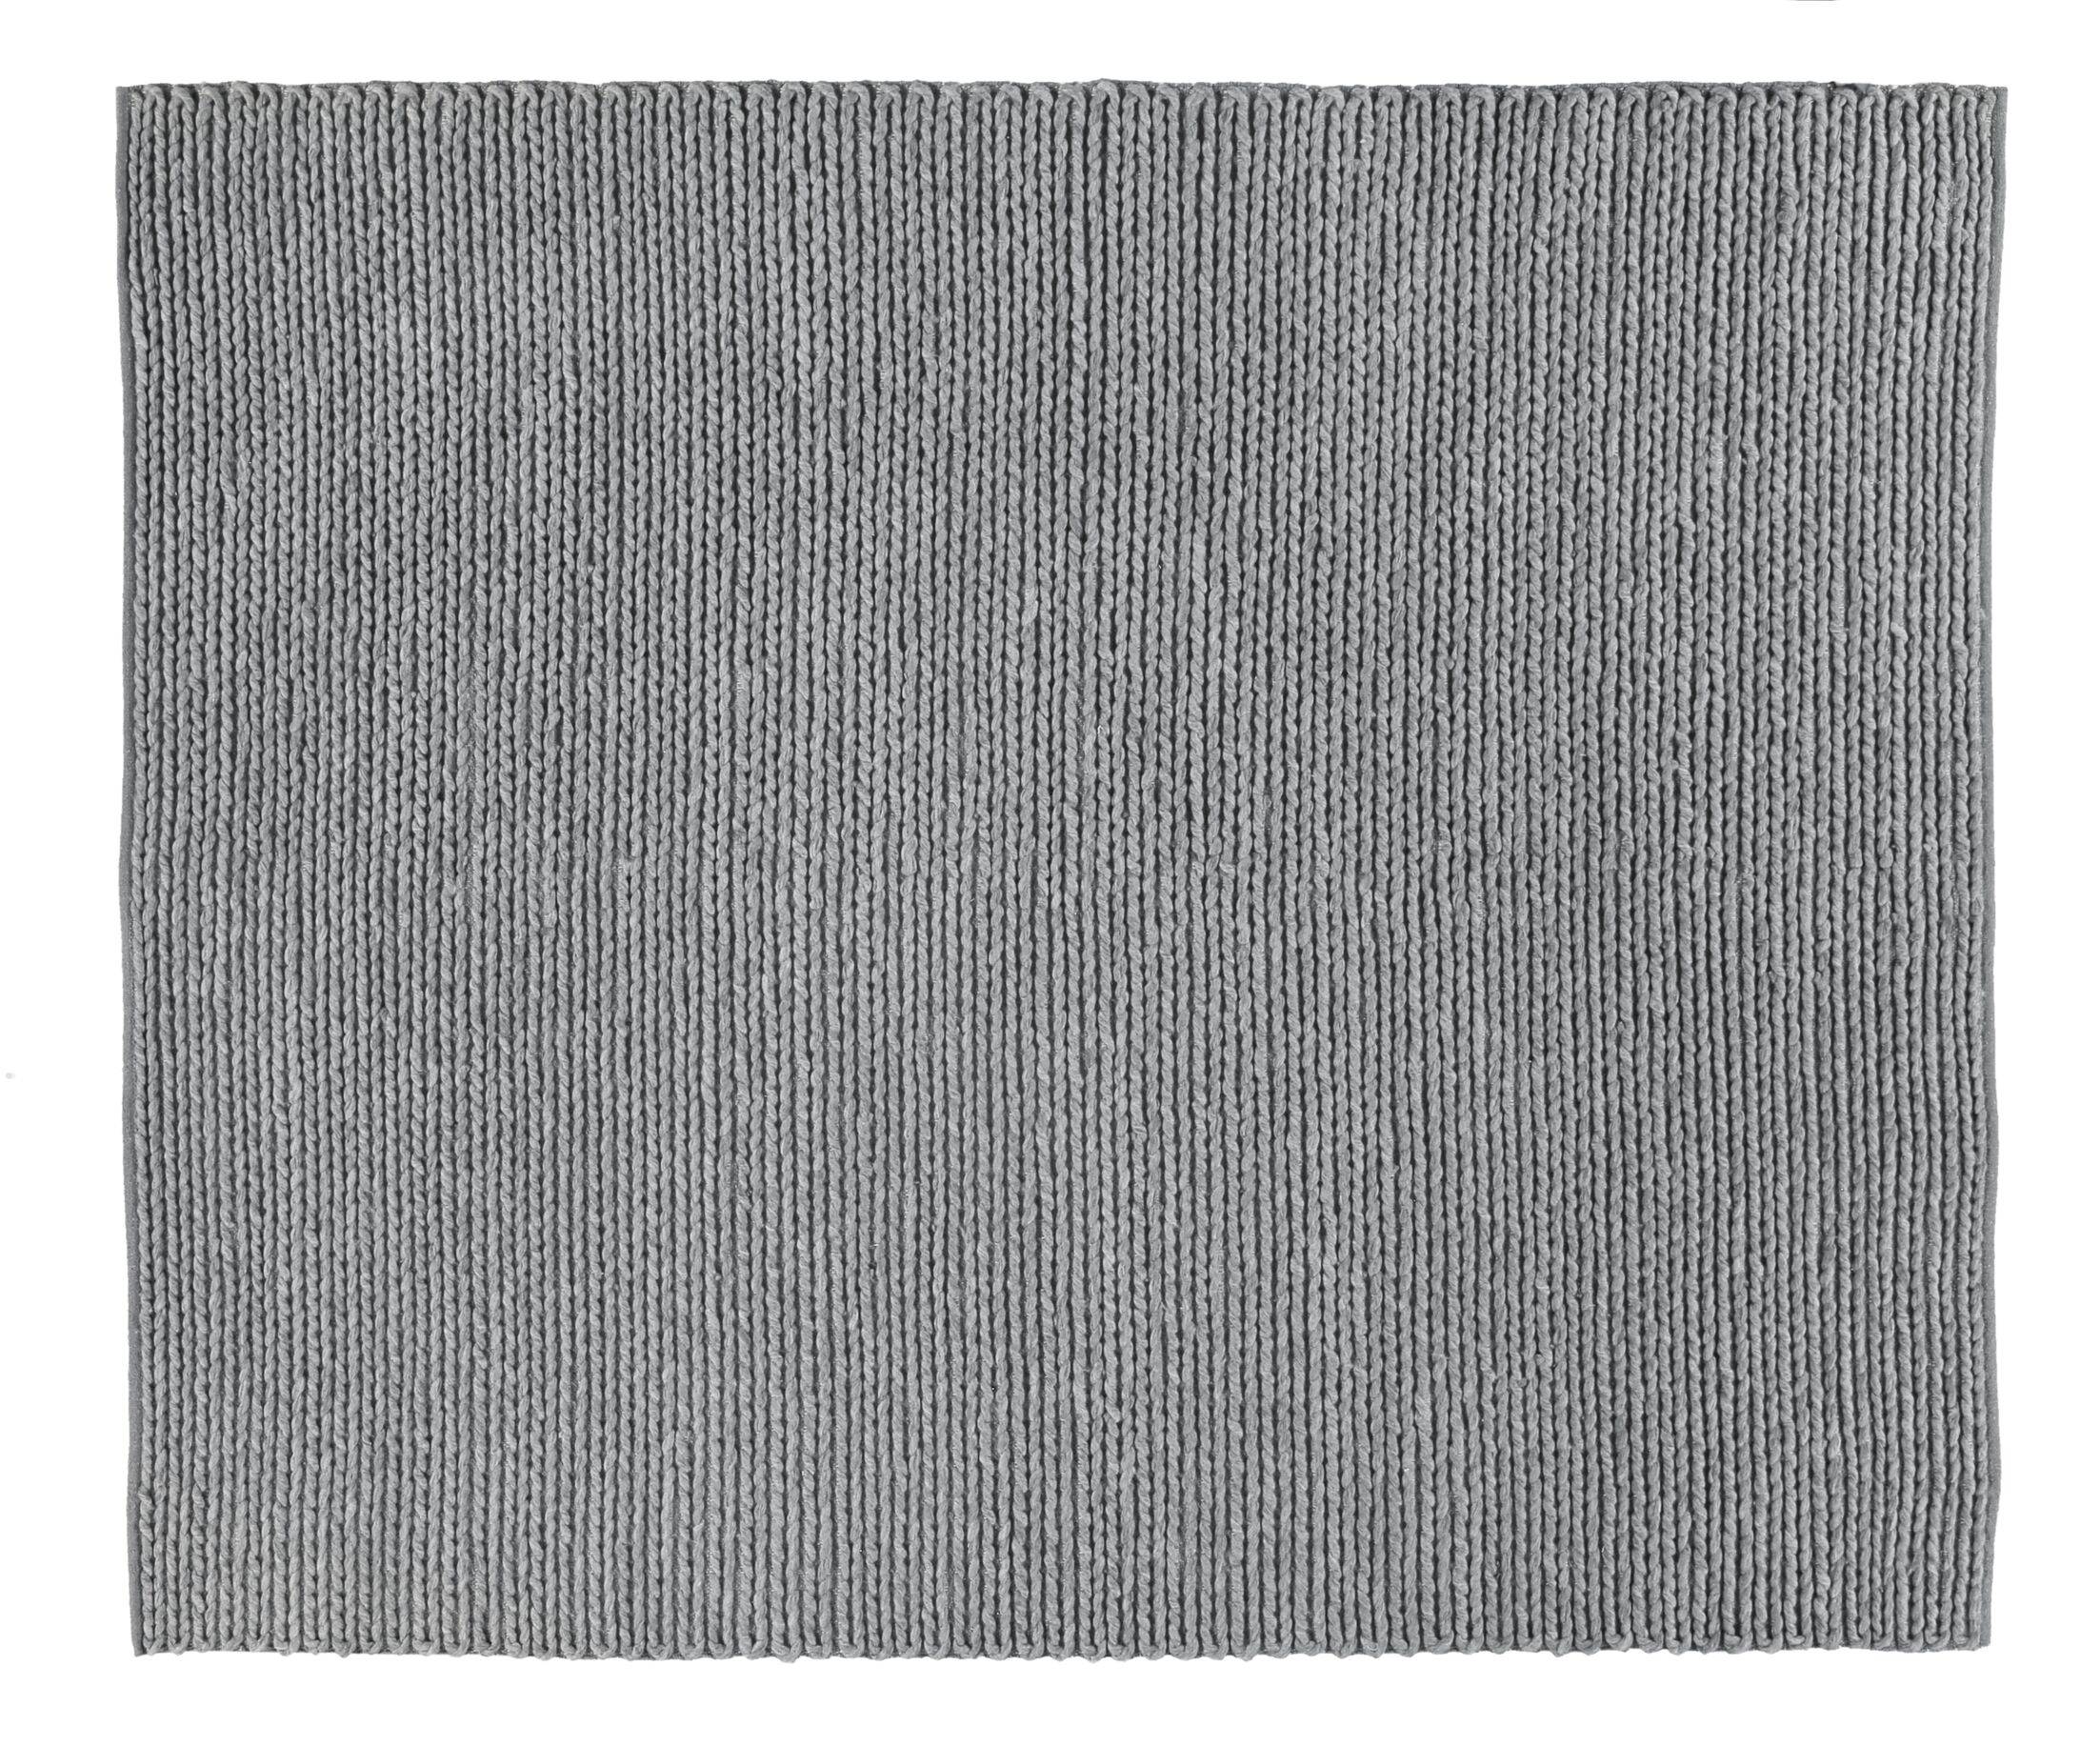 Arlow Hand-Woven Dark Gray Area Rug Rug Size: Rectangle 10' x 14'